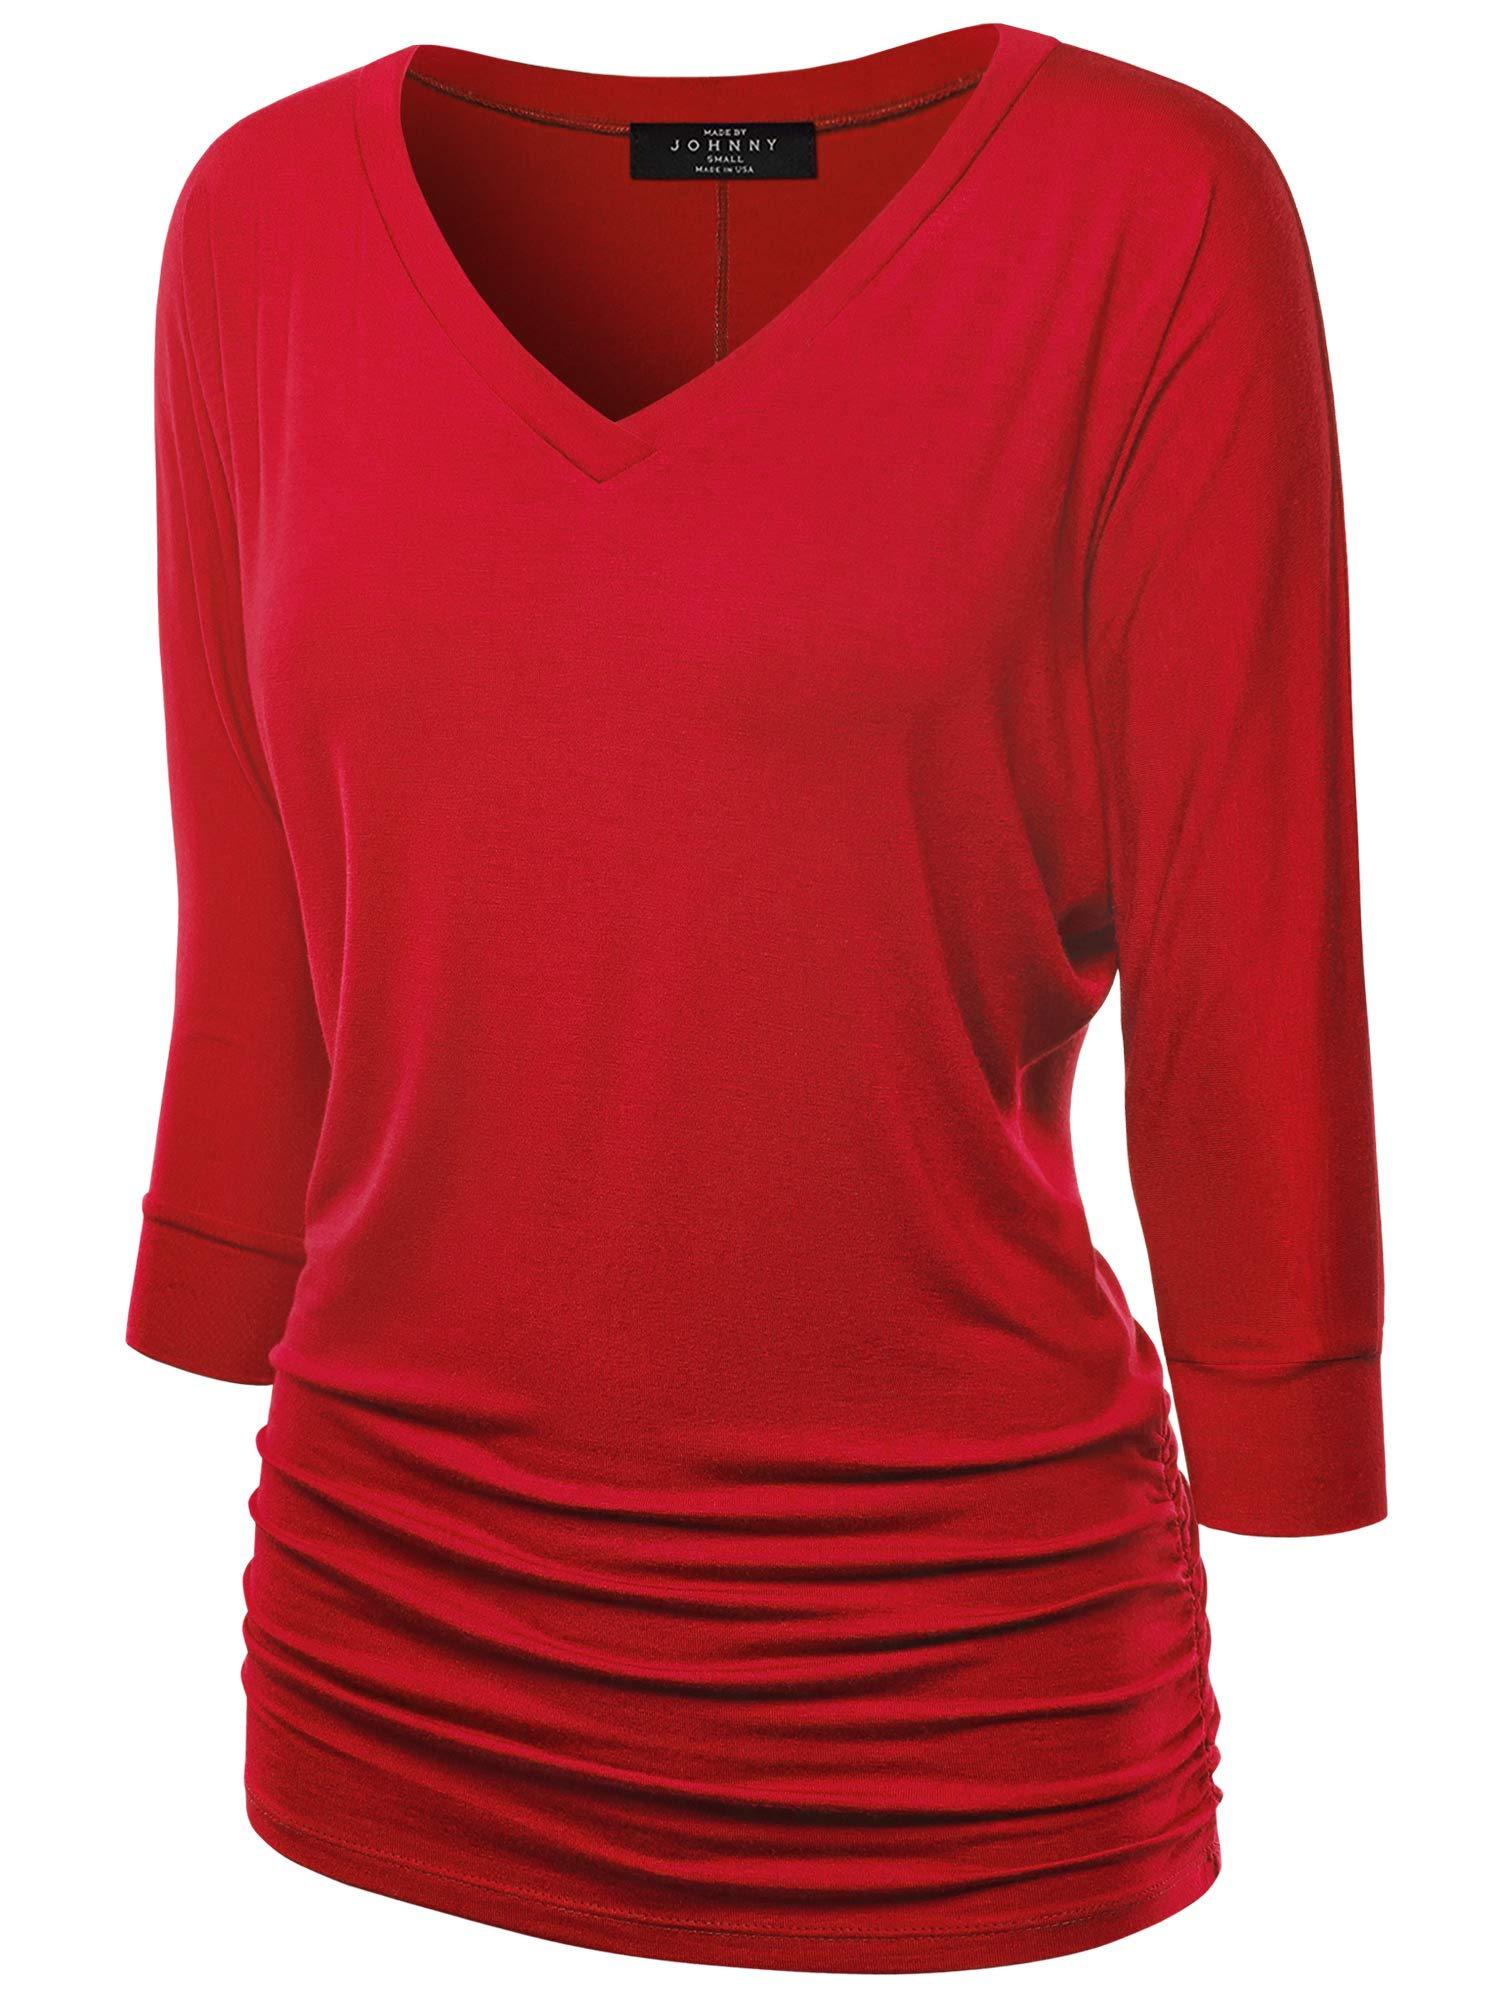 Made By Johnny Women's V-Neck/Boat Neck 3/4 Sleeve Drape Dolman Shirt Top with Side Shirring